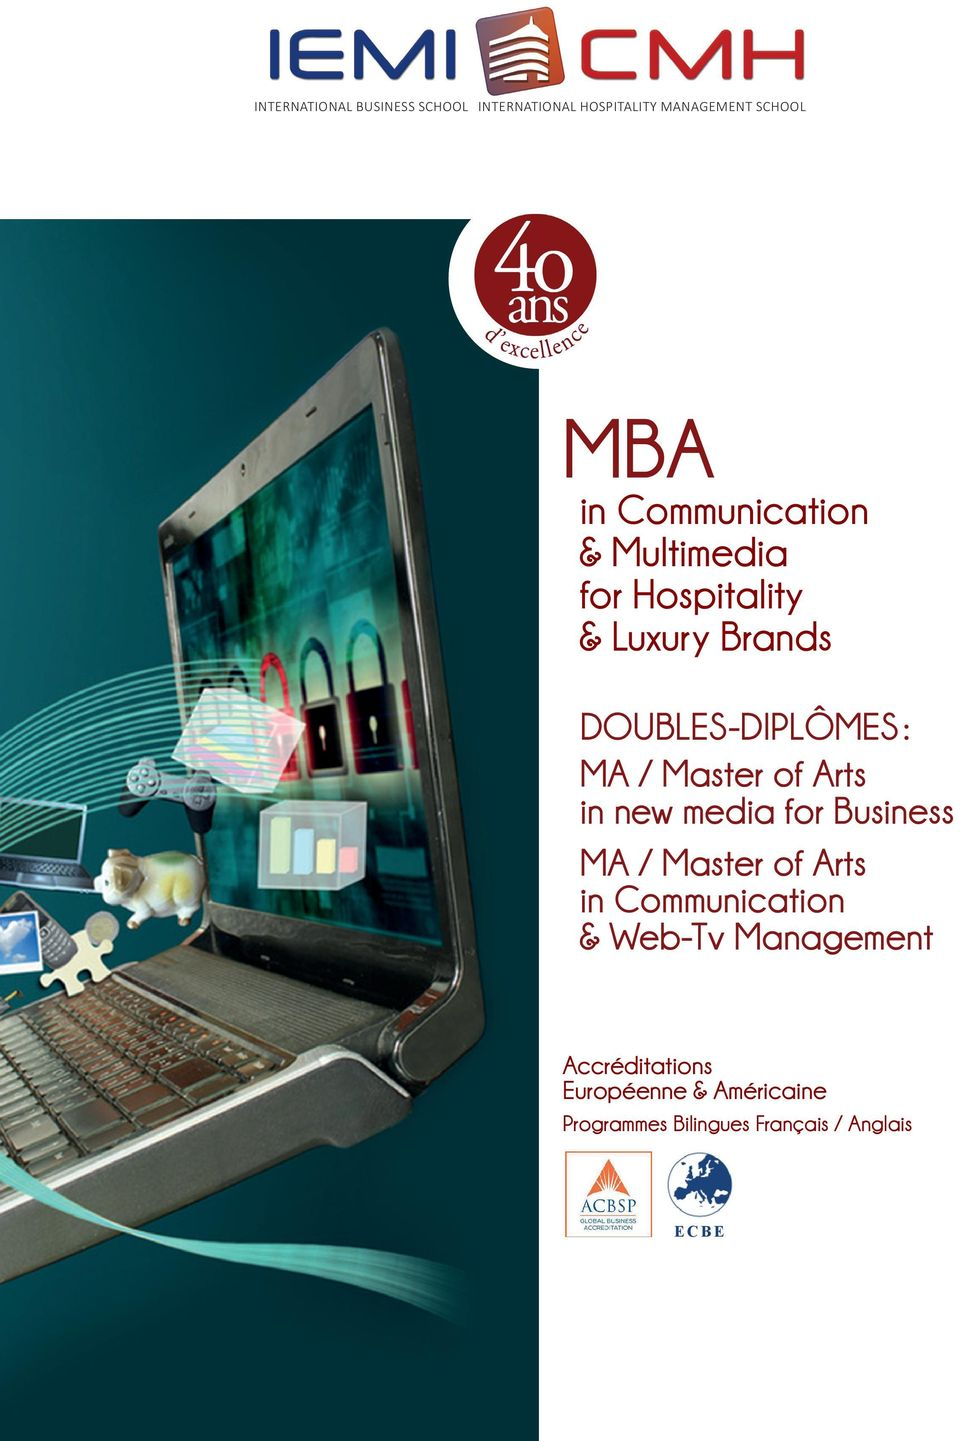 Master of Arts in new media for Business MA / Master of Arts in Communication & Web-Tv